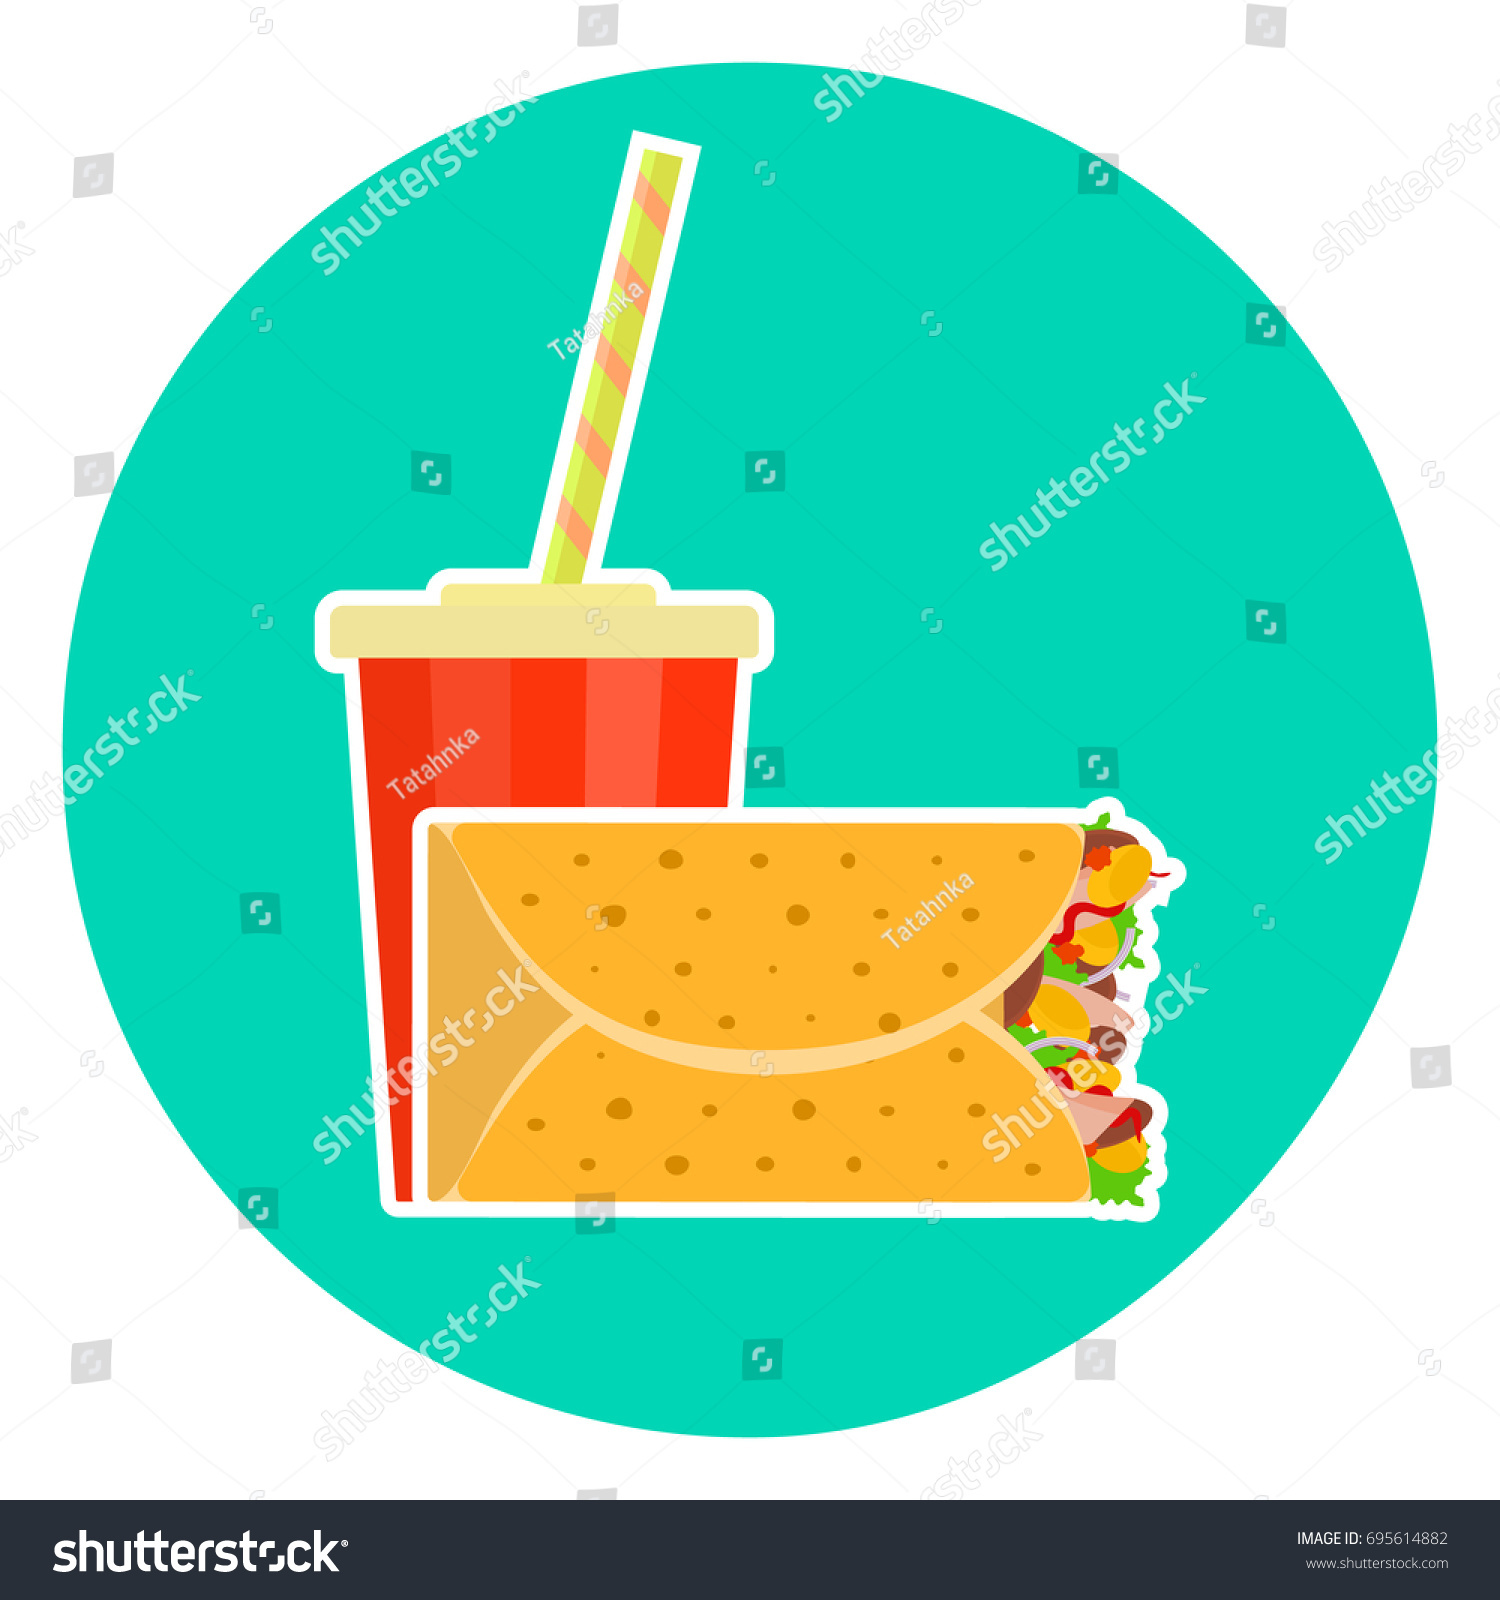 Flat Colorful Vector Lovely Fast Food Stock Vector 695614882